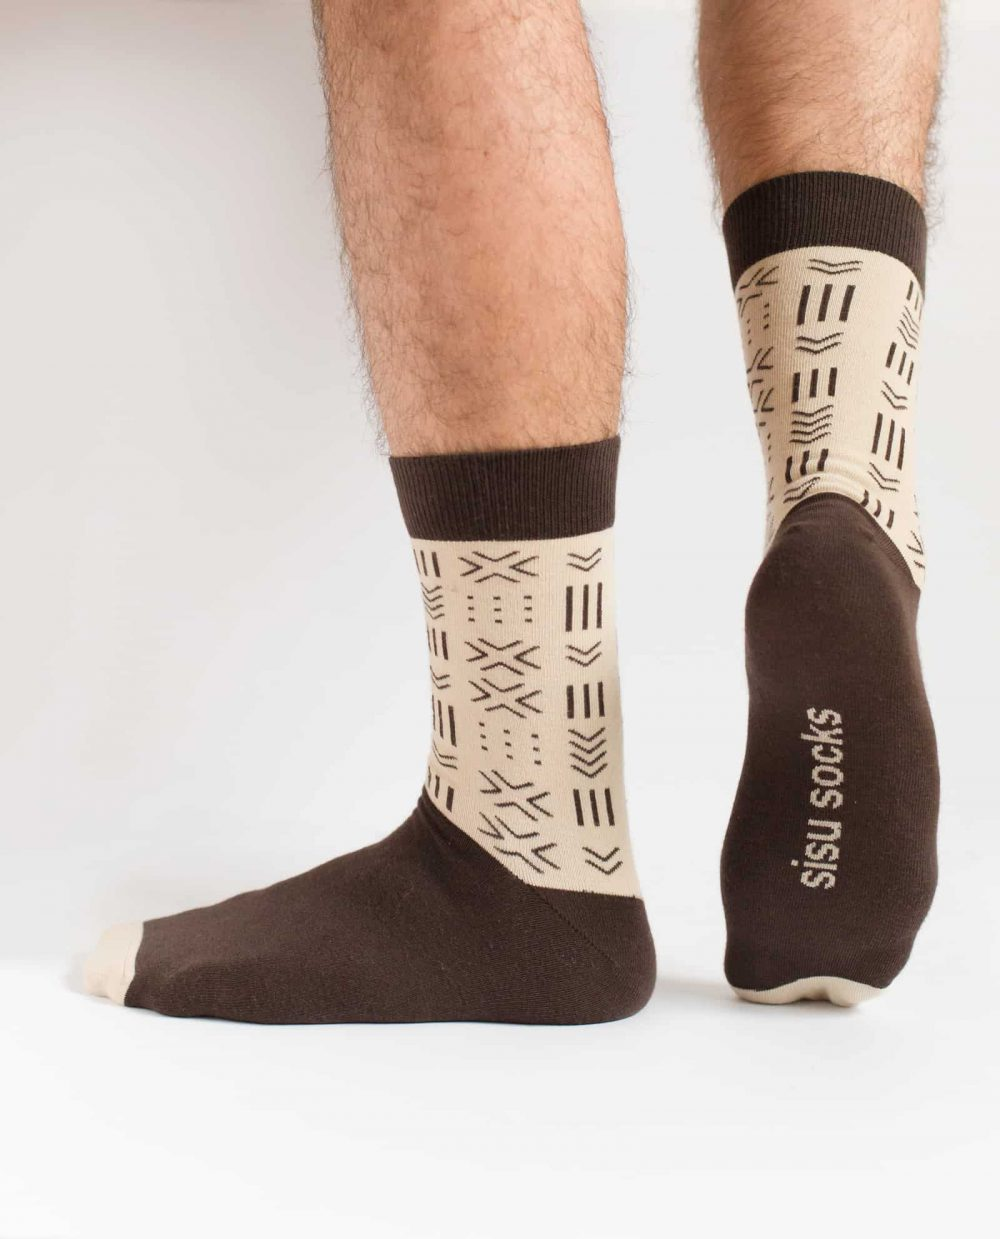 brown and beige african mudcloth socks for men from sisu socks